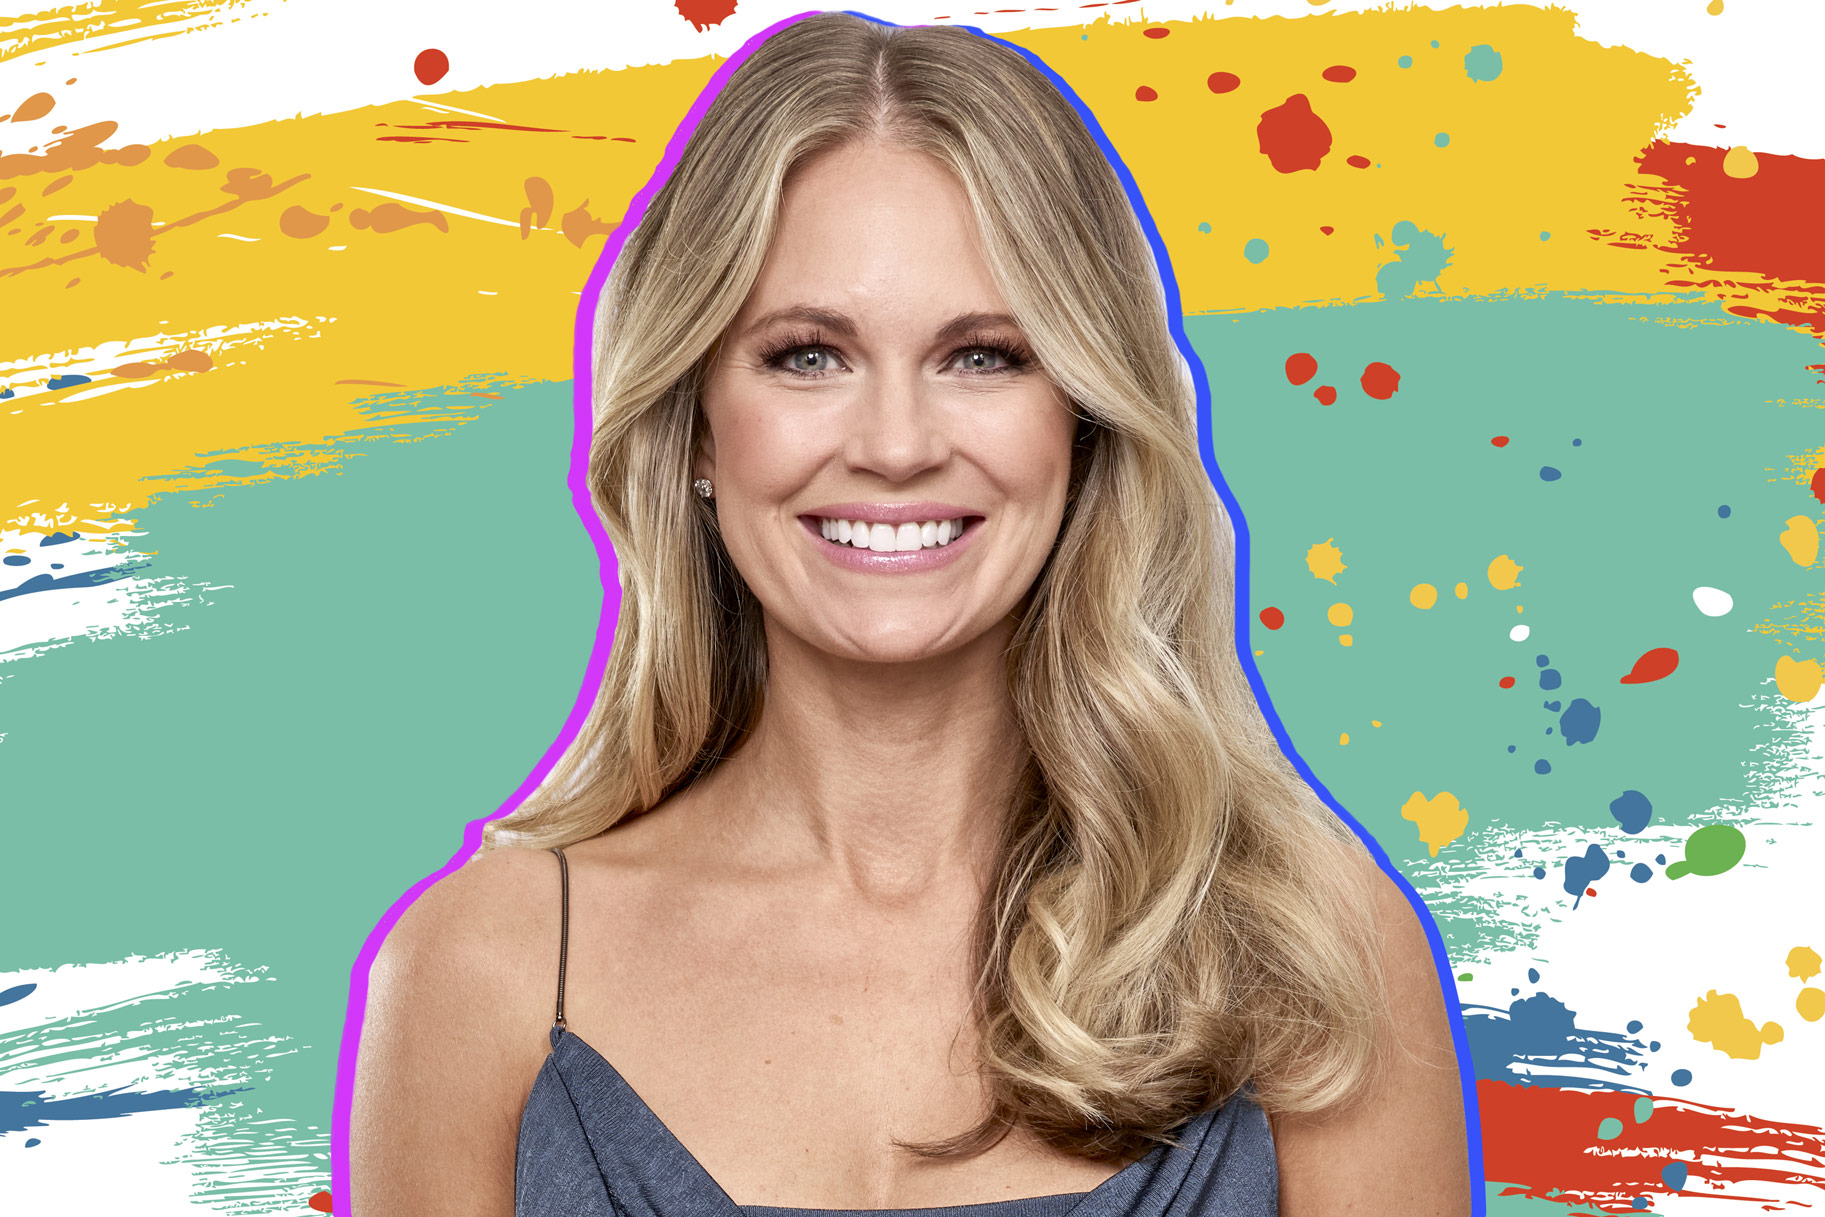 Cameran Eubanks Says The Real Housewives of South Carolina Is Her Next Career Move